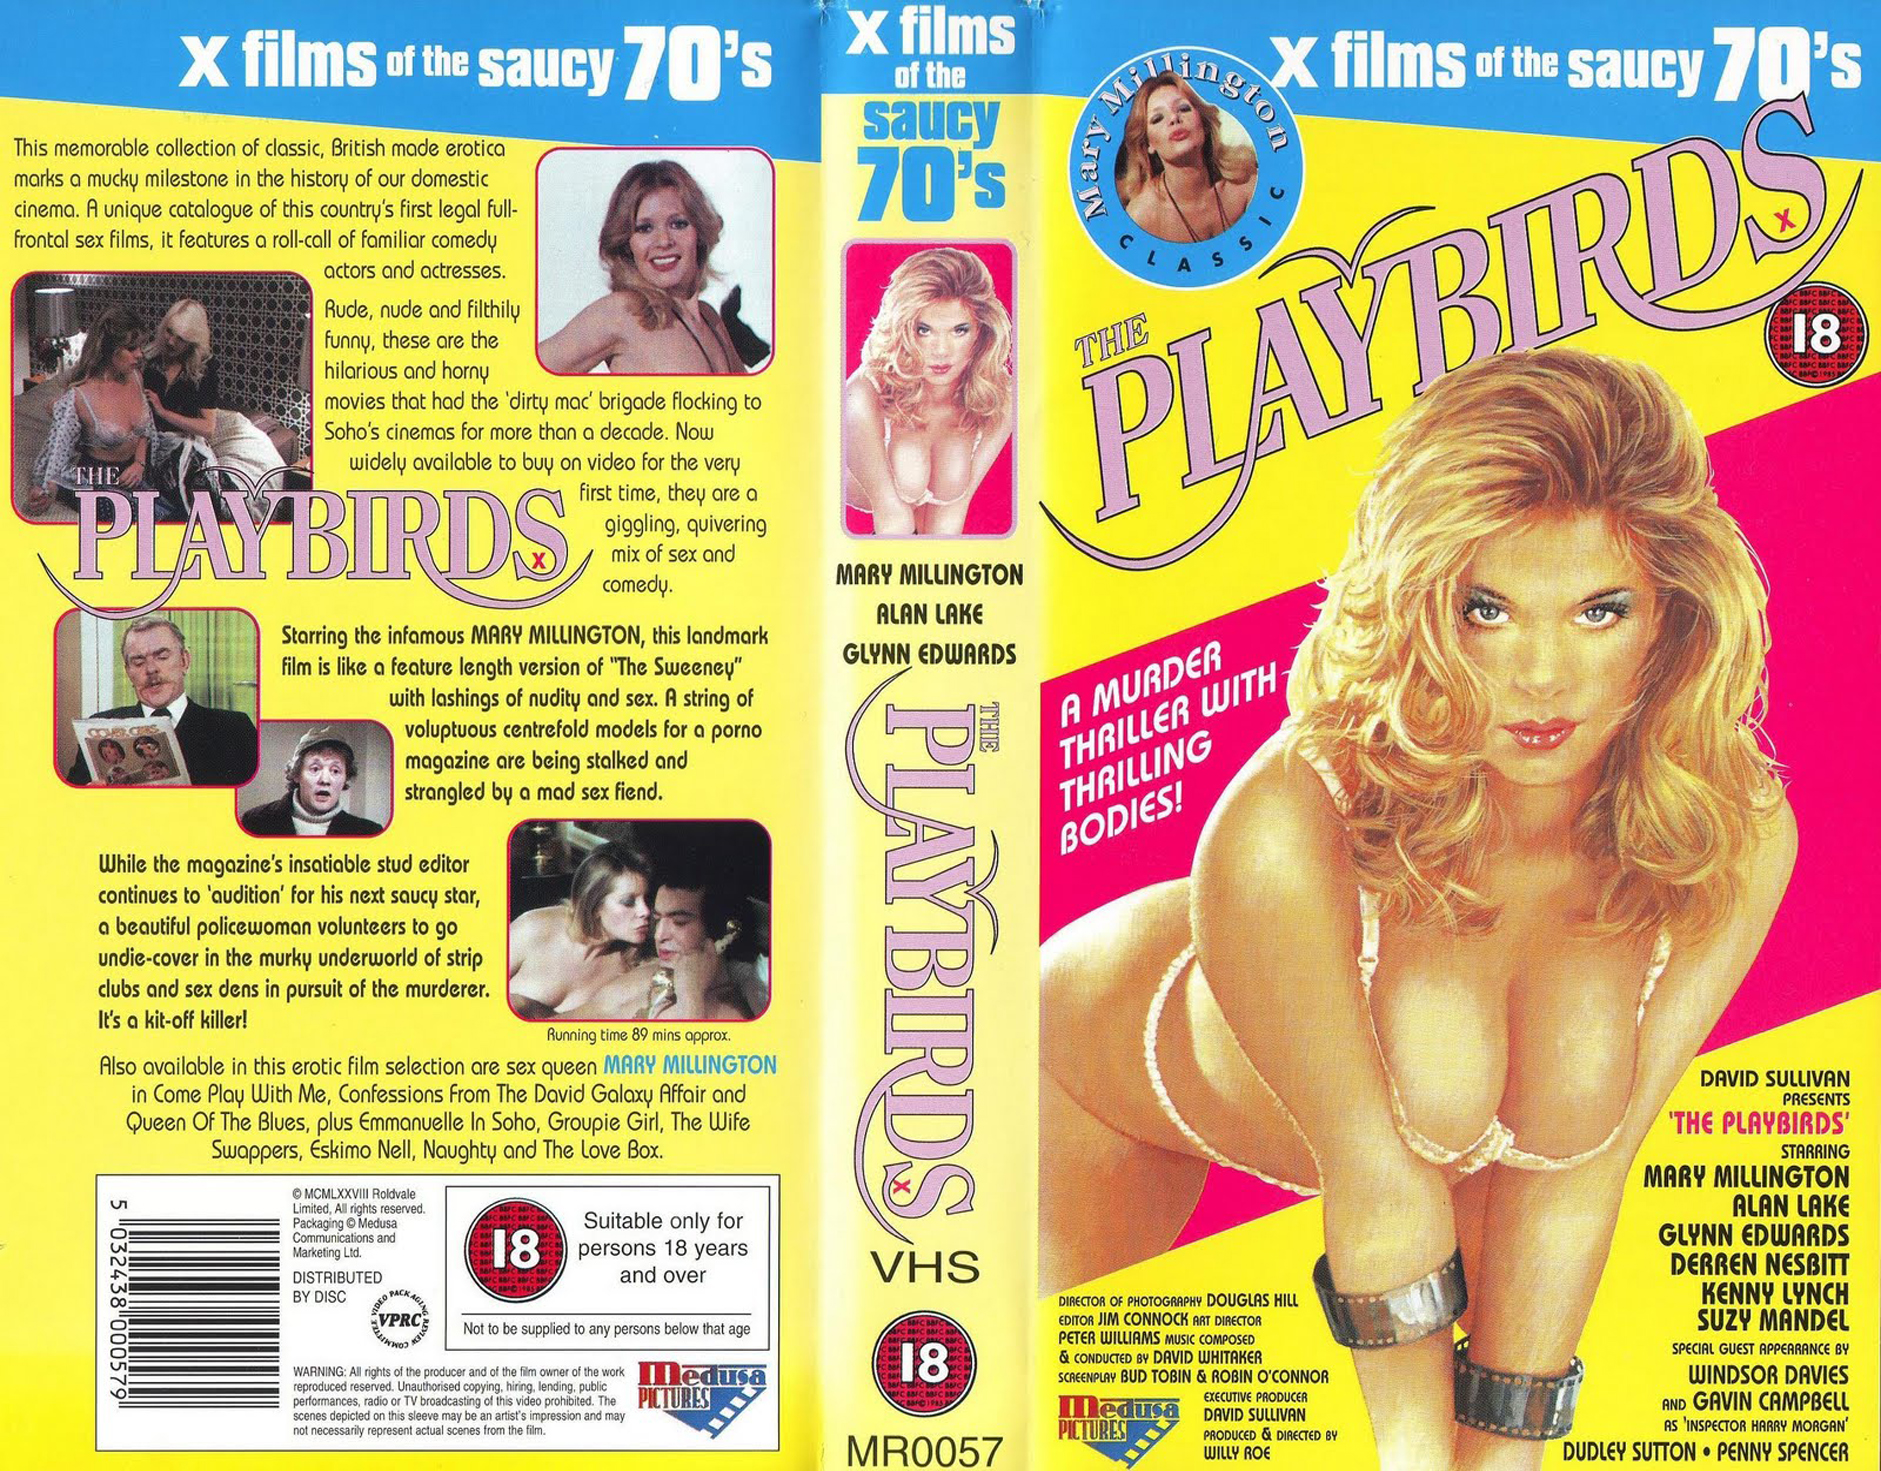 The Playbirds movie